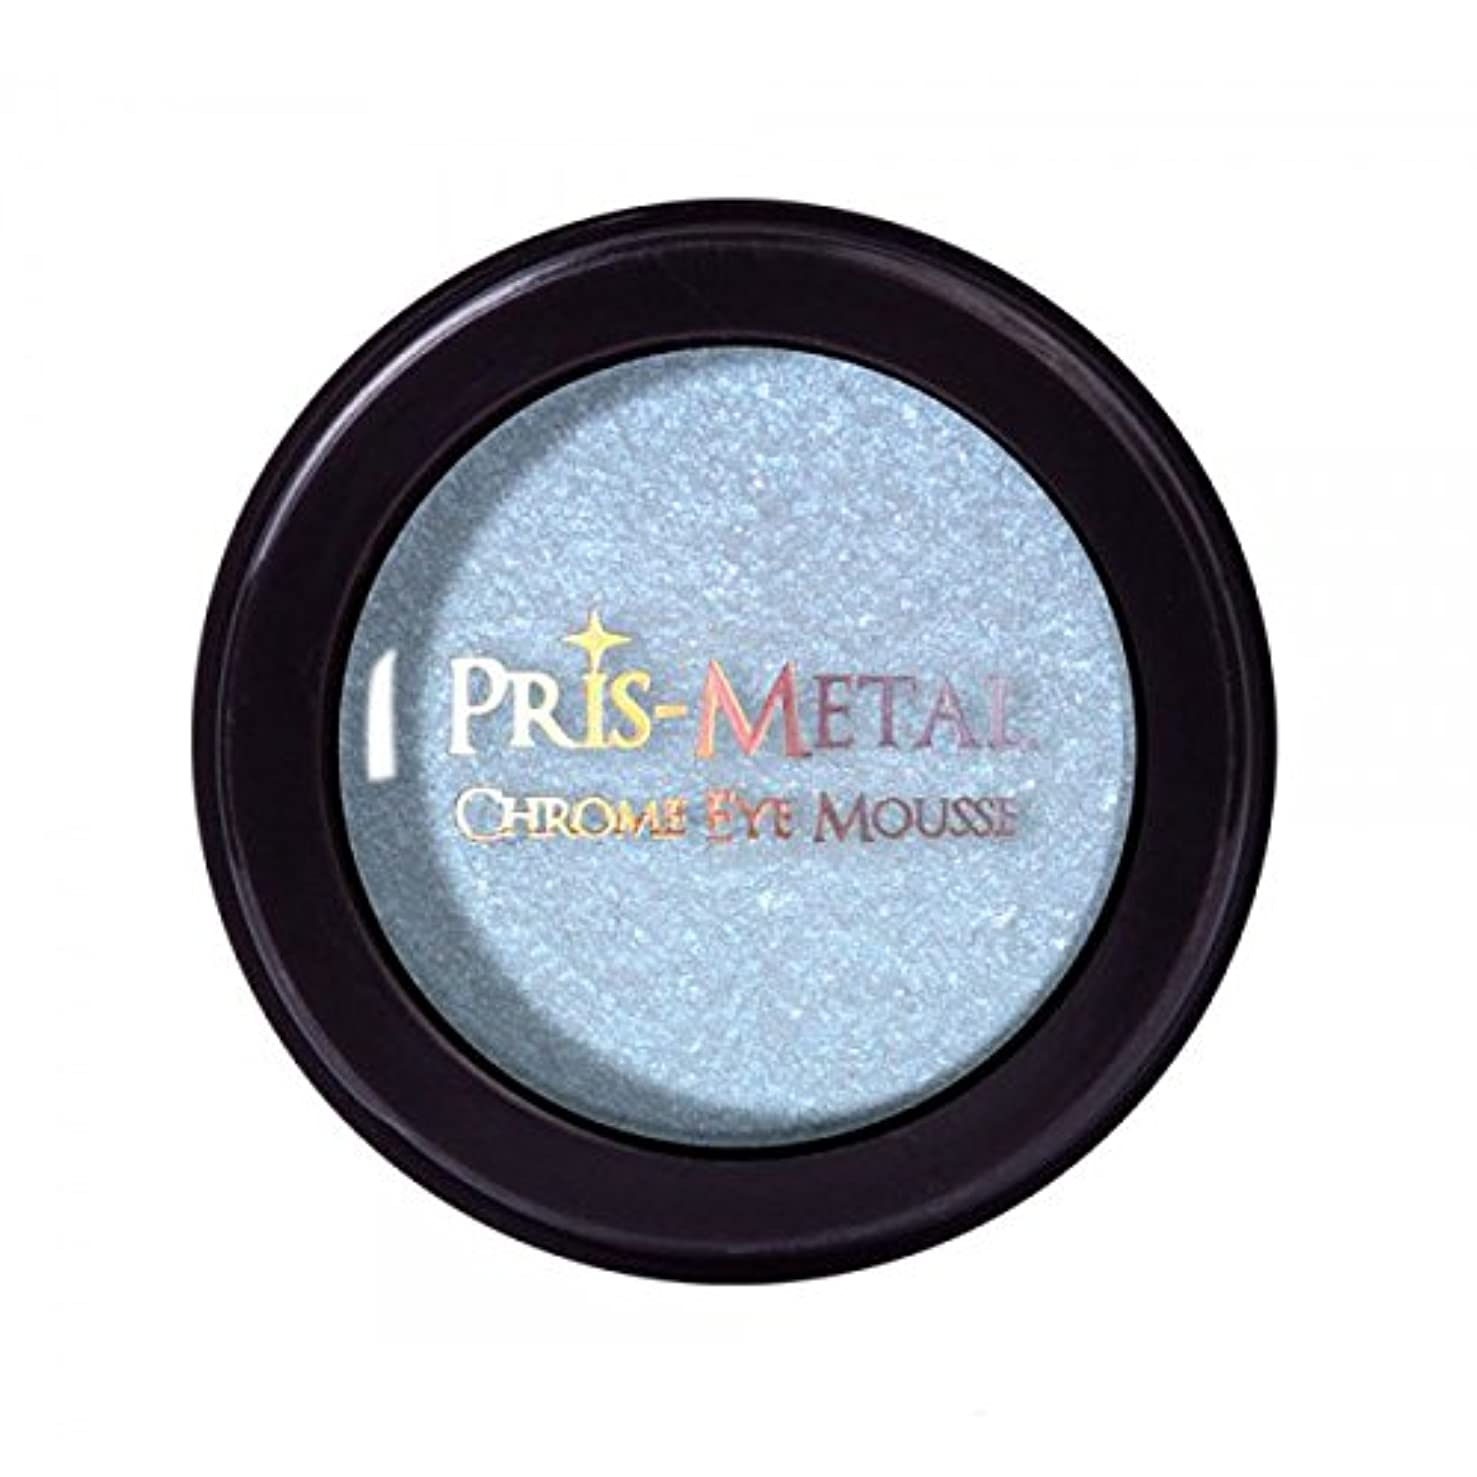 国籍終了しました側溝(3 Pack) J. CAT BEAUTY Pris-Metal Chrome Eye Mousse - Dreamer (並行輸入品)